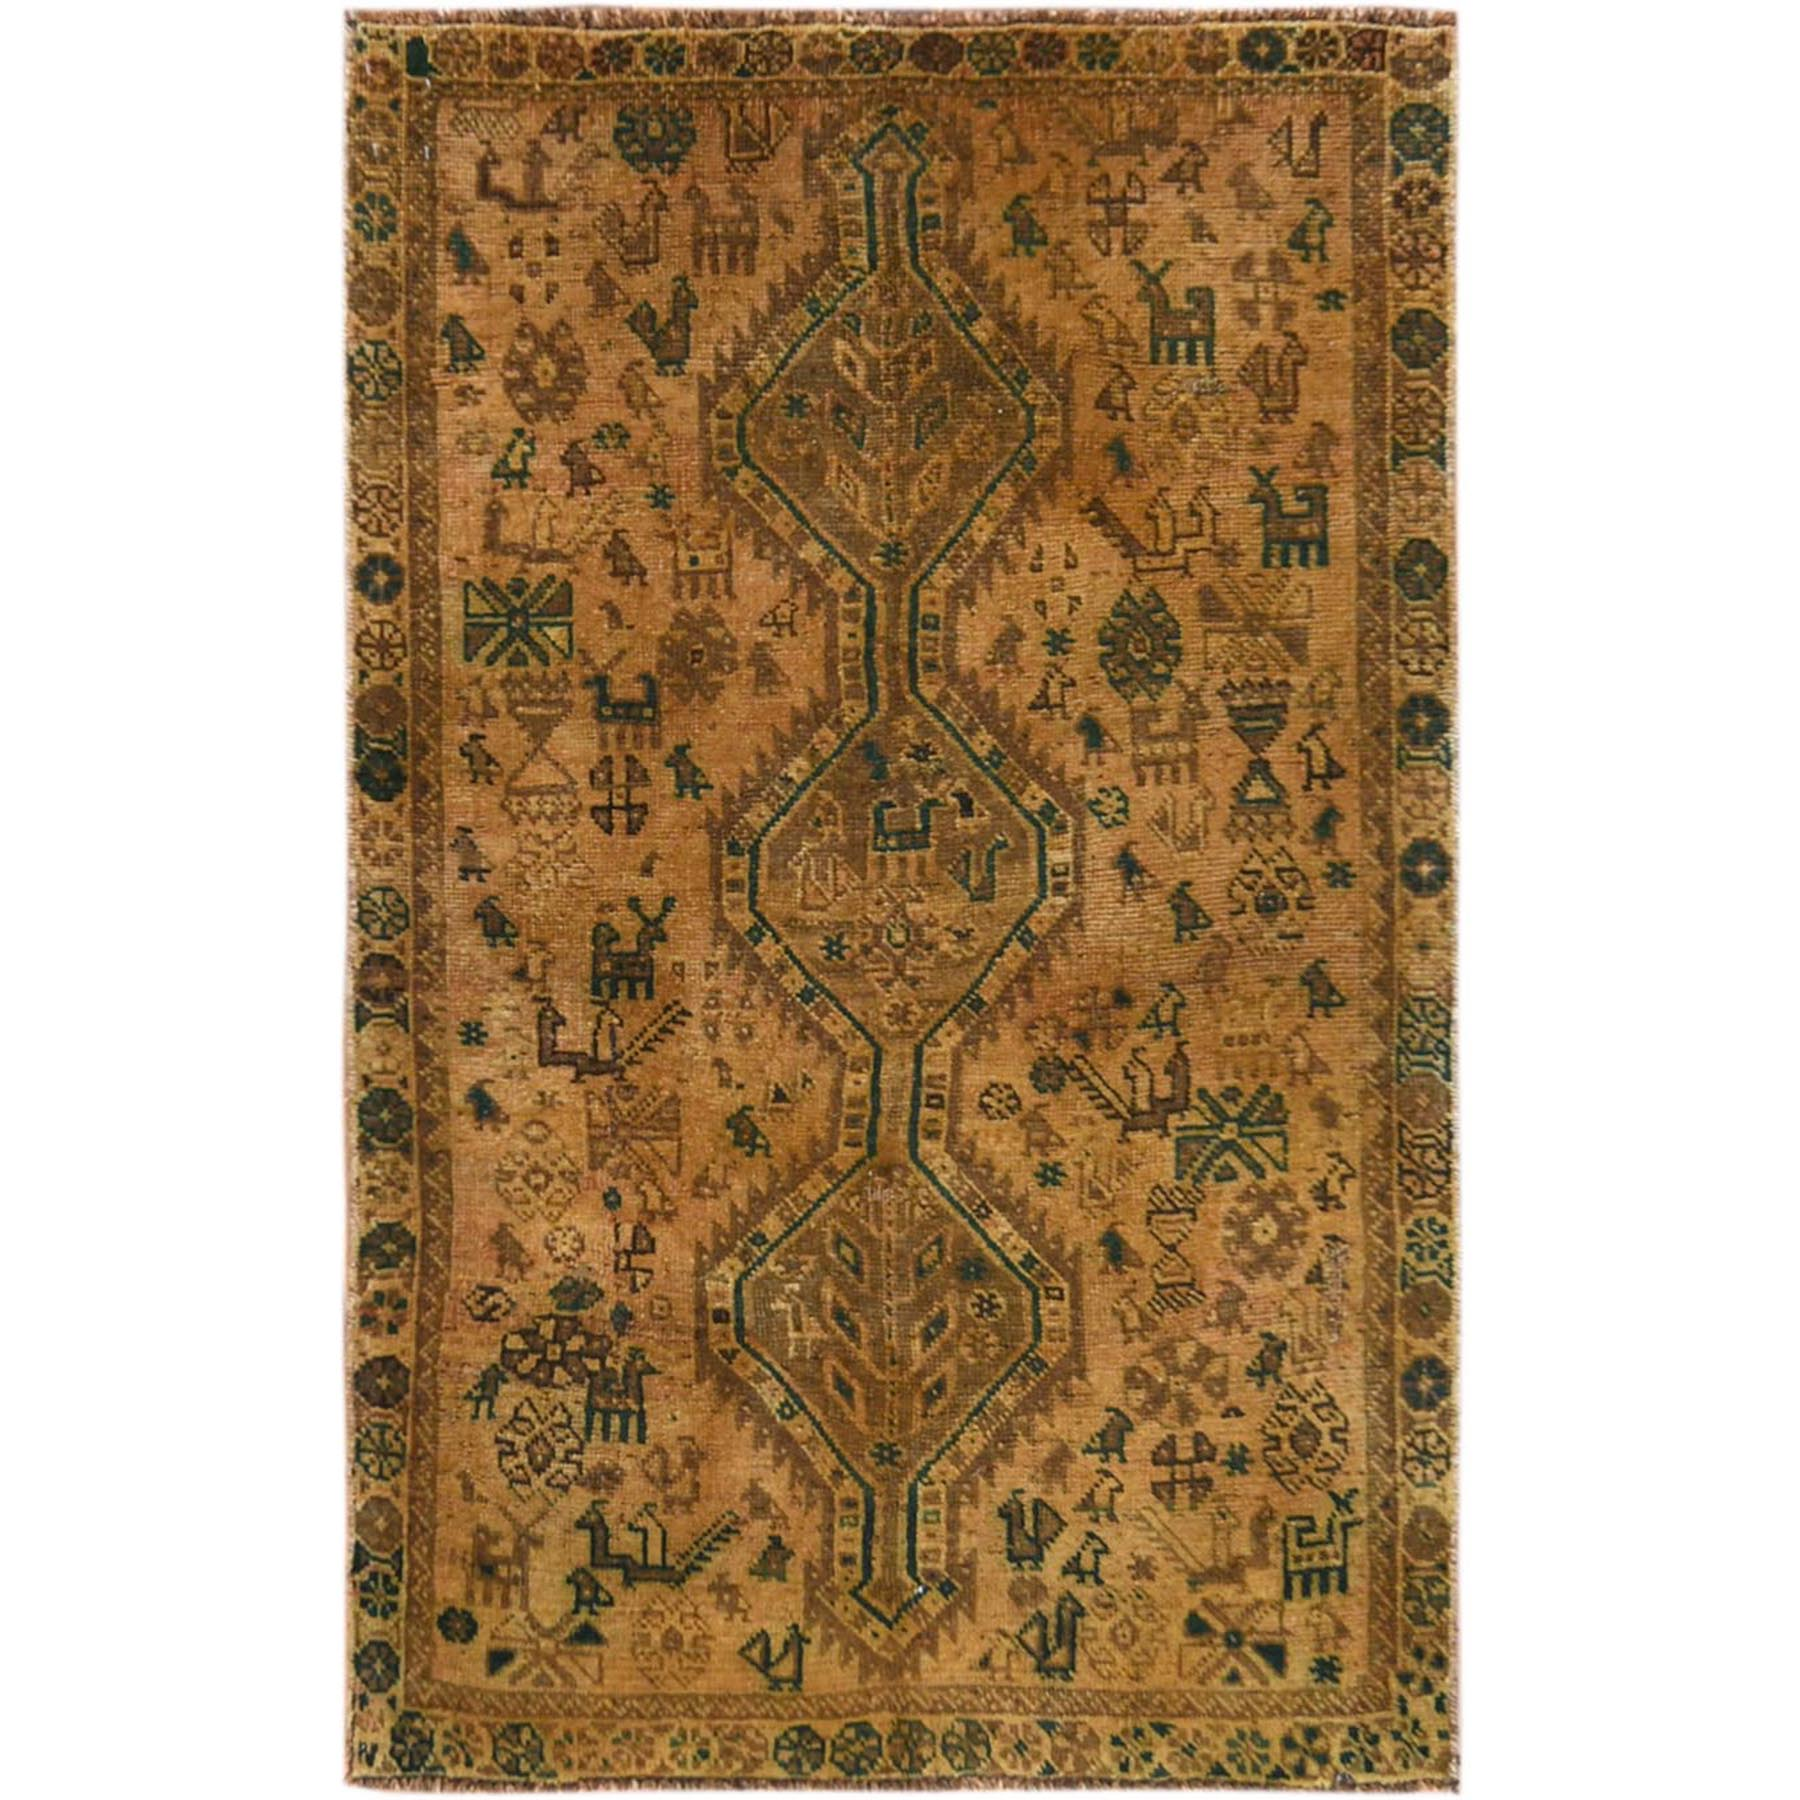 "3'3""x5'3"" Vintage Honey Brown Hand Woven Persian Shiraz With Animals Design Bohemian Distressed Organic Wool Clean Oriental Rug"